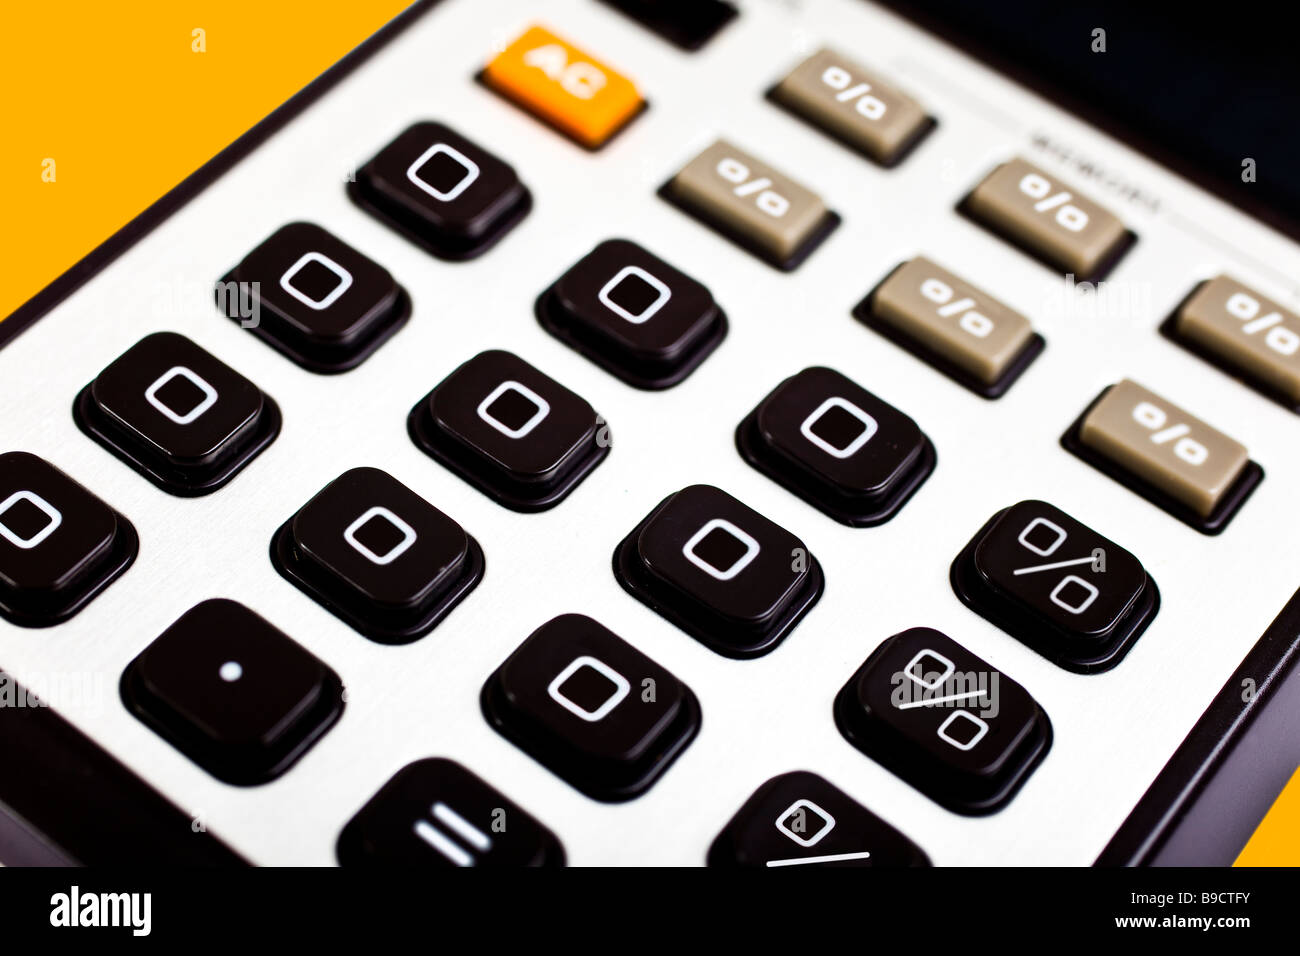 0% zero percent interest rates shown on a old fashioned calculator - Stock Image